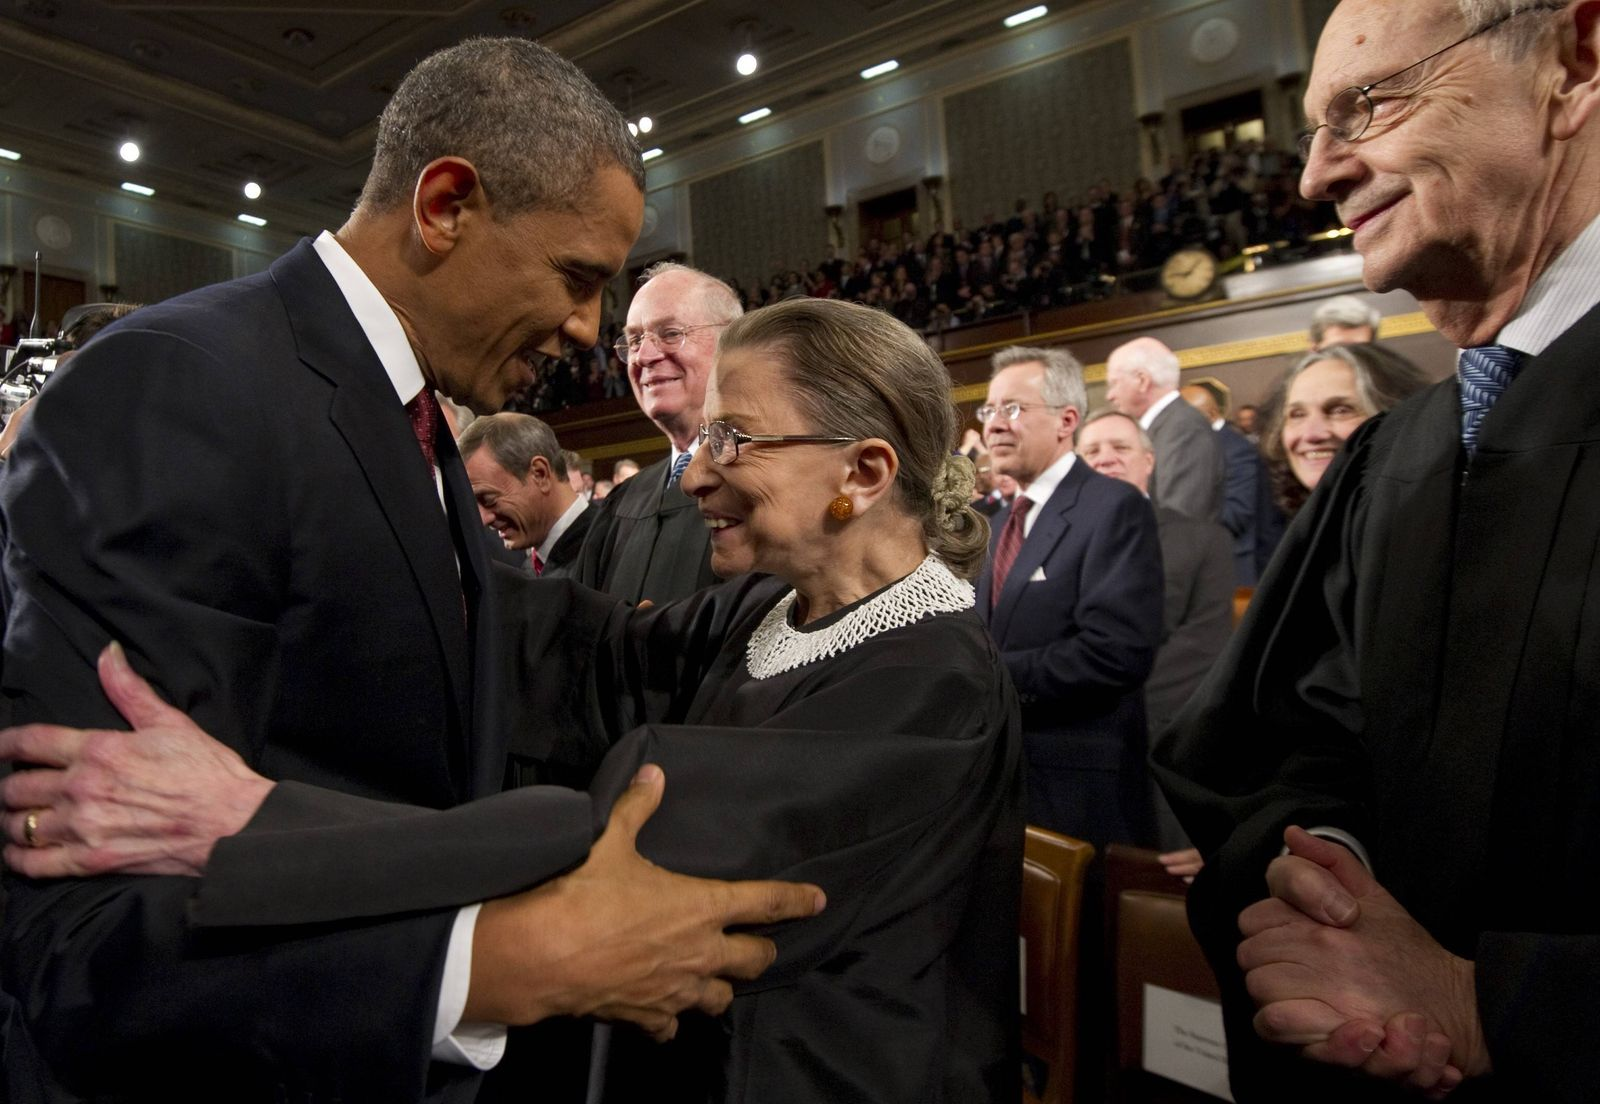 President Barack Obama greets US Supreme Court Justice Ruth Bader Ginsburg prior to his State of the Union address in f